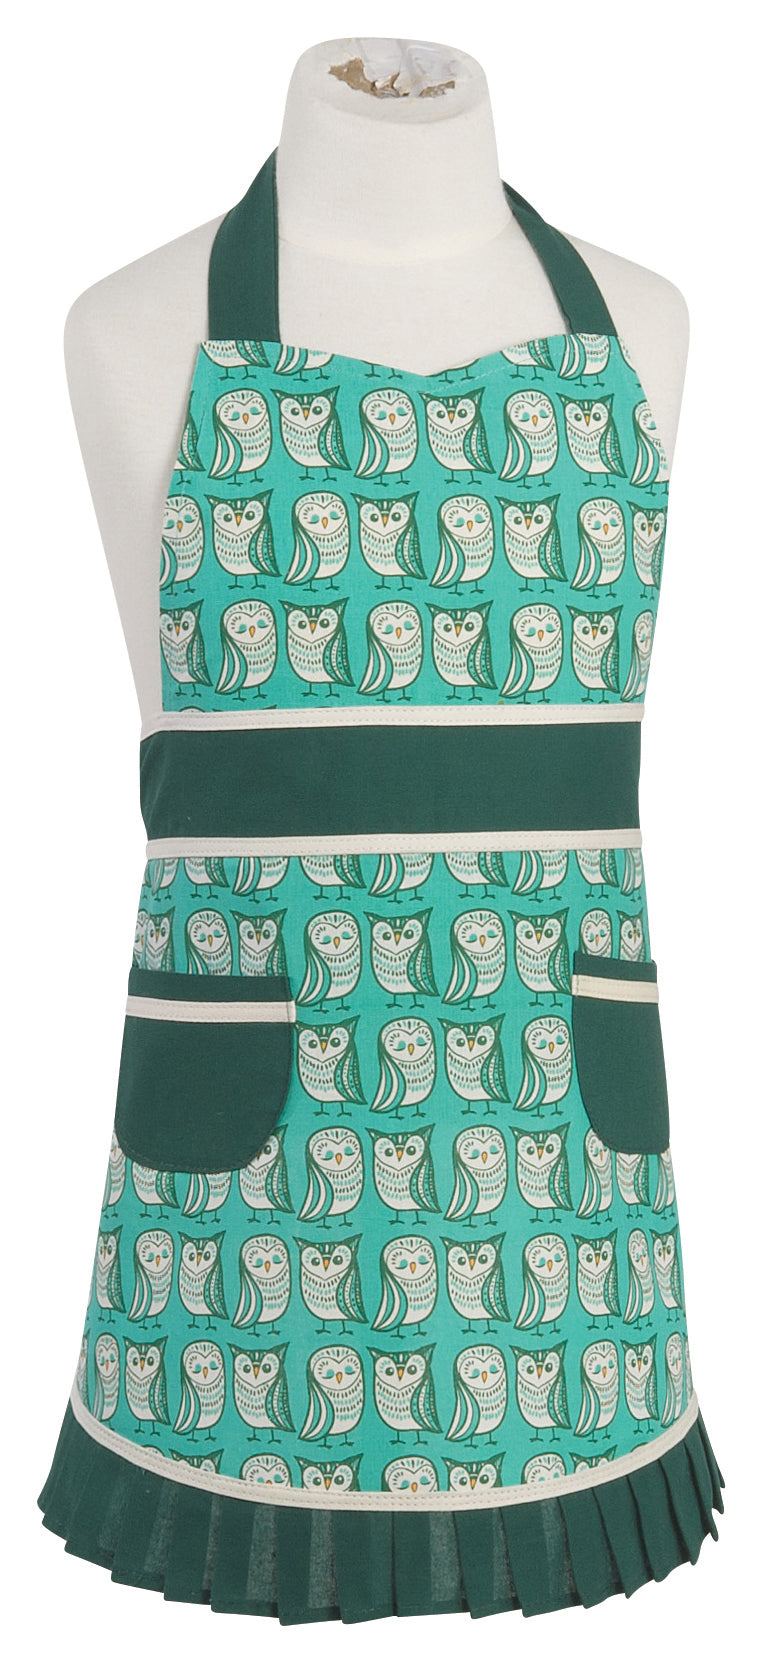 Hoot Owl Childs Apron